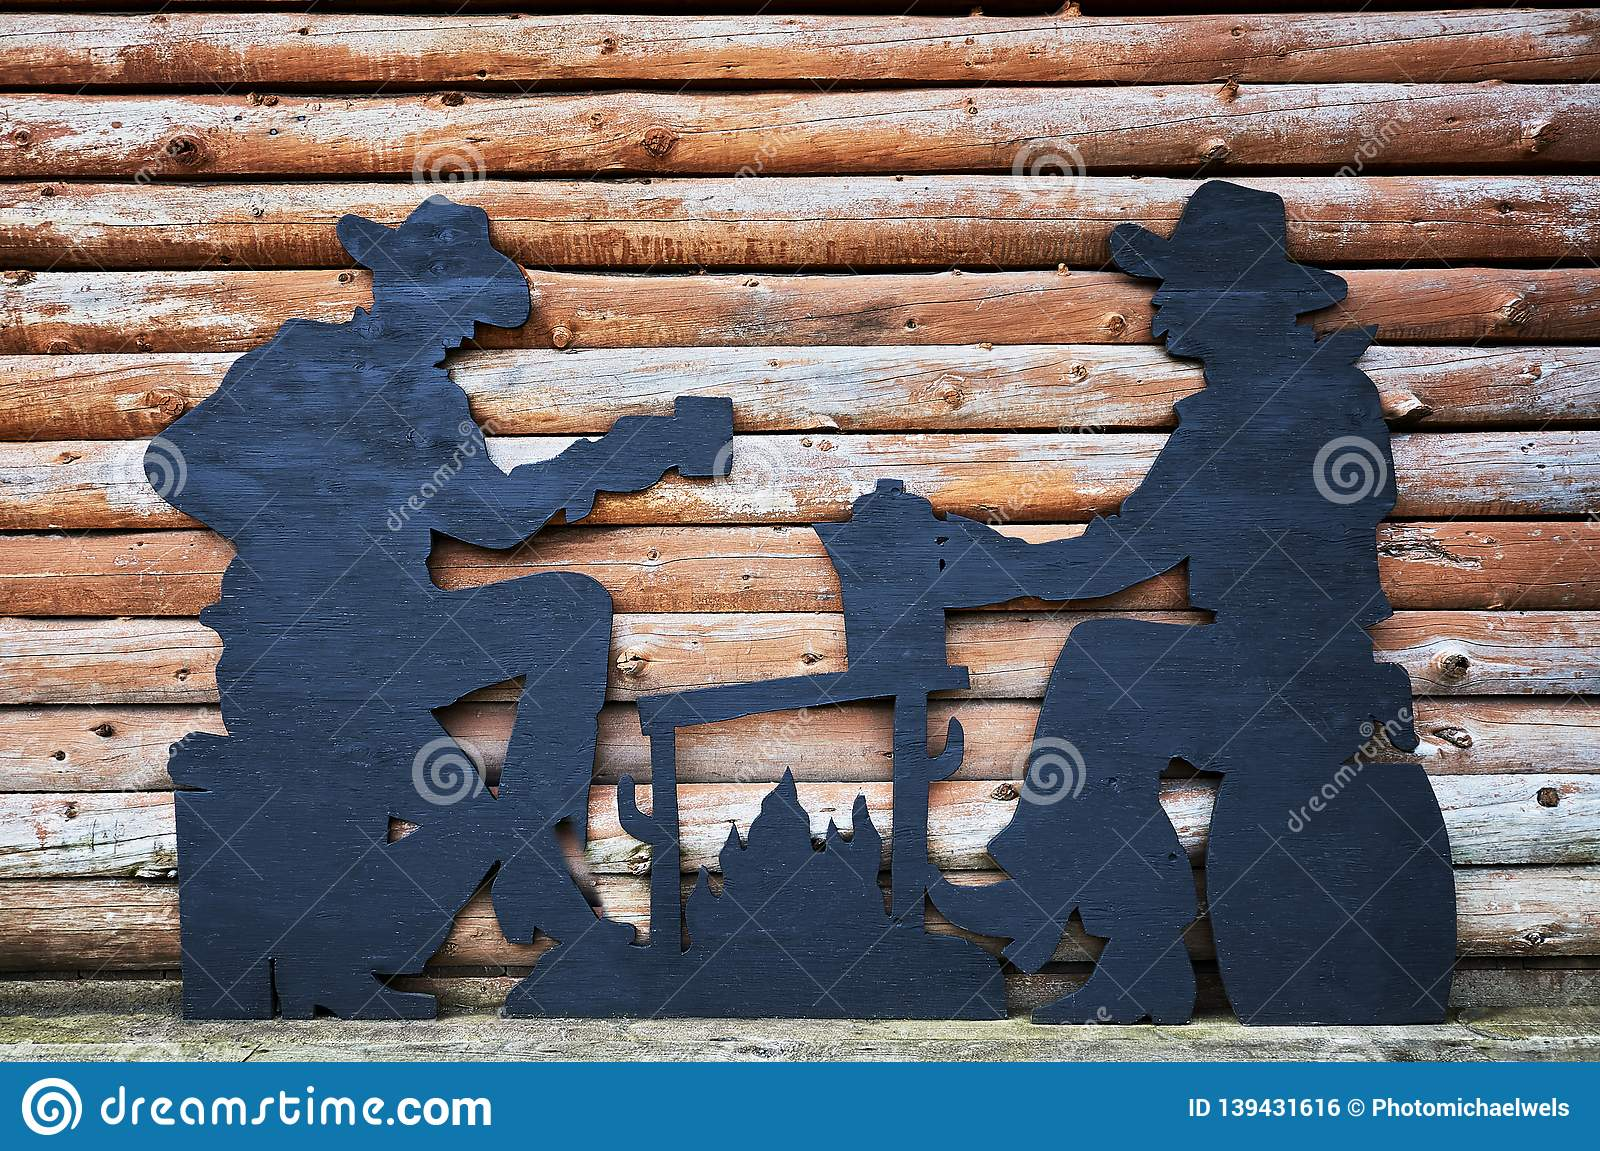 Two men drinking coffee wooden caricature